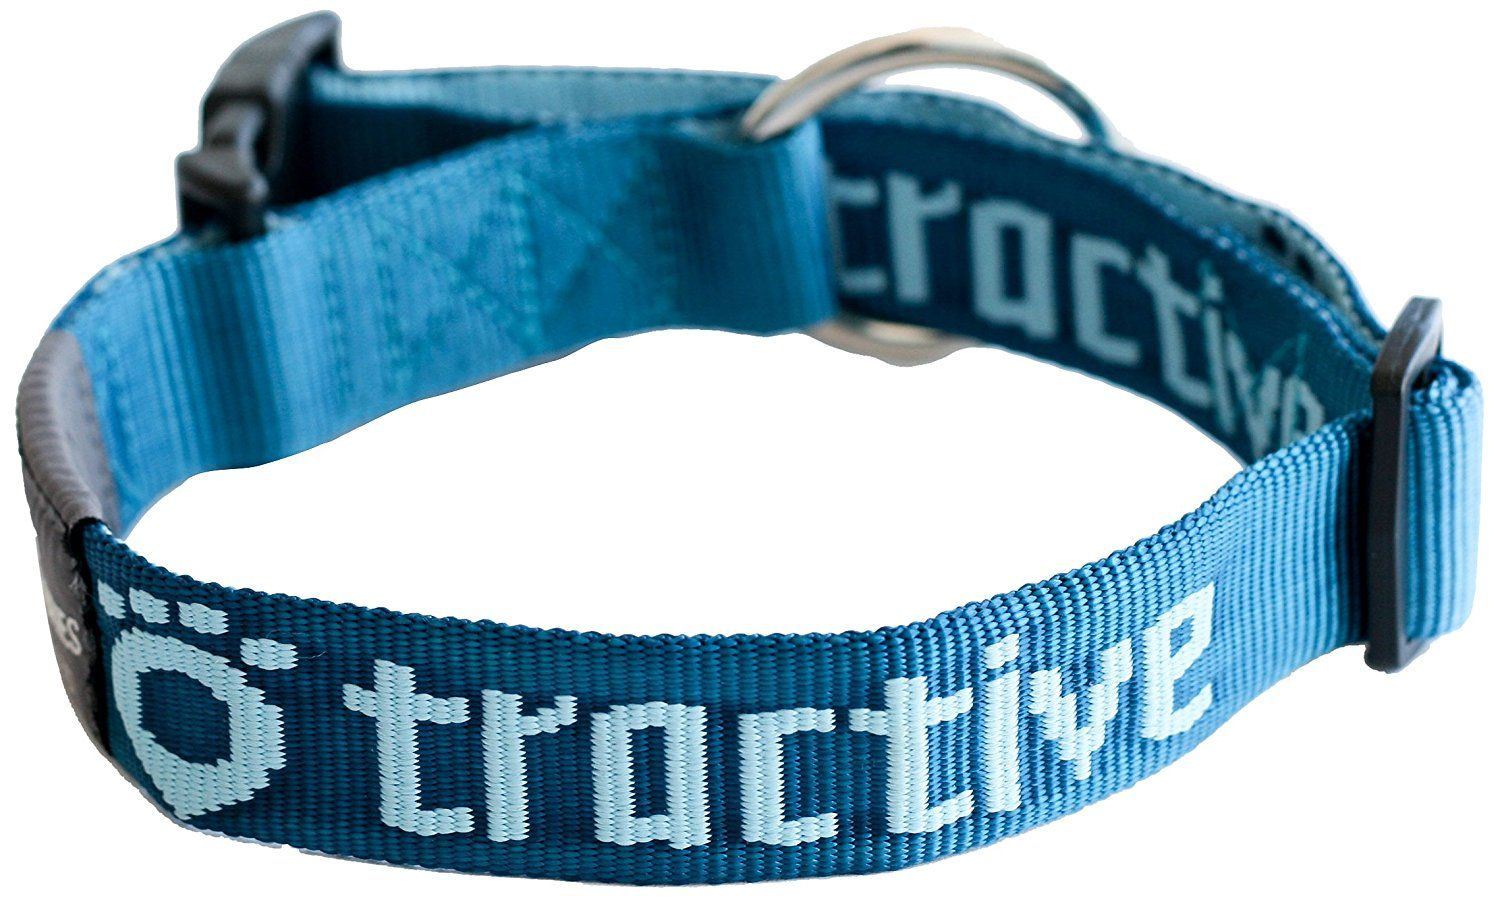 Tractive Dog Collar with Safety Interlock Buckle, Large